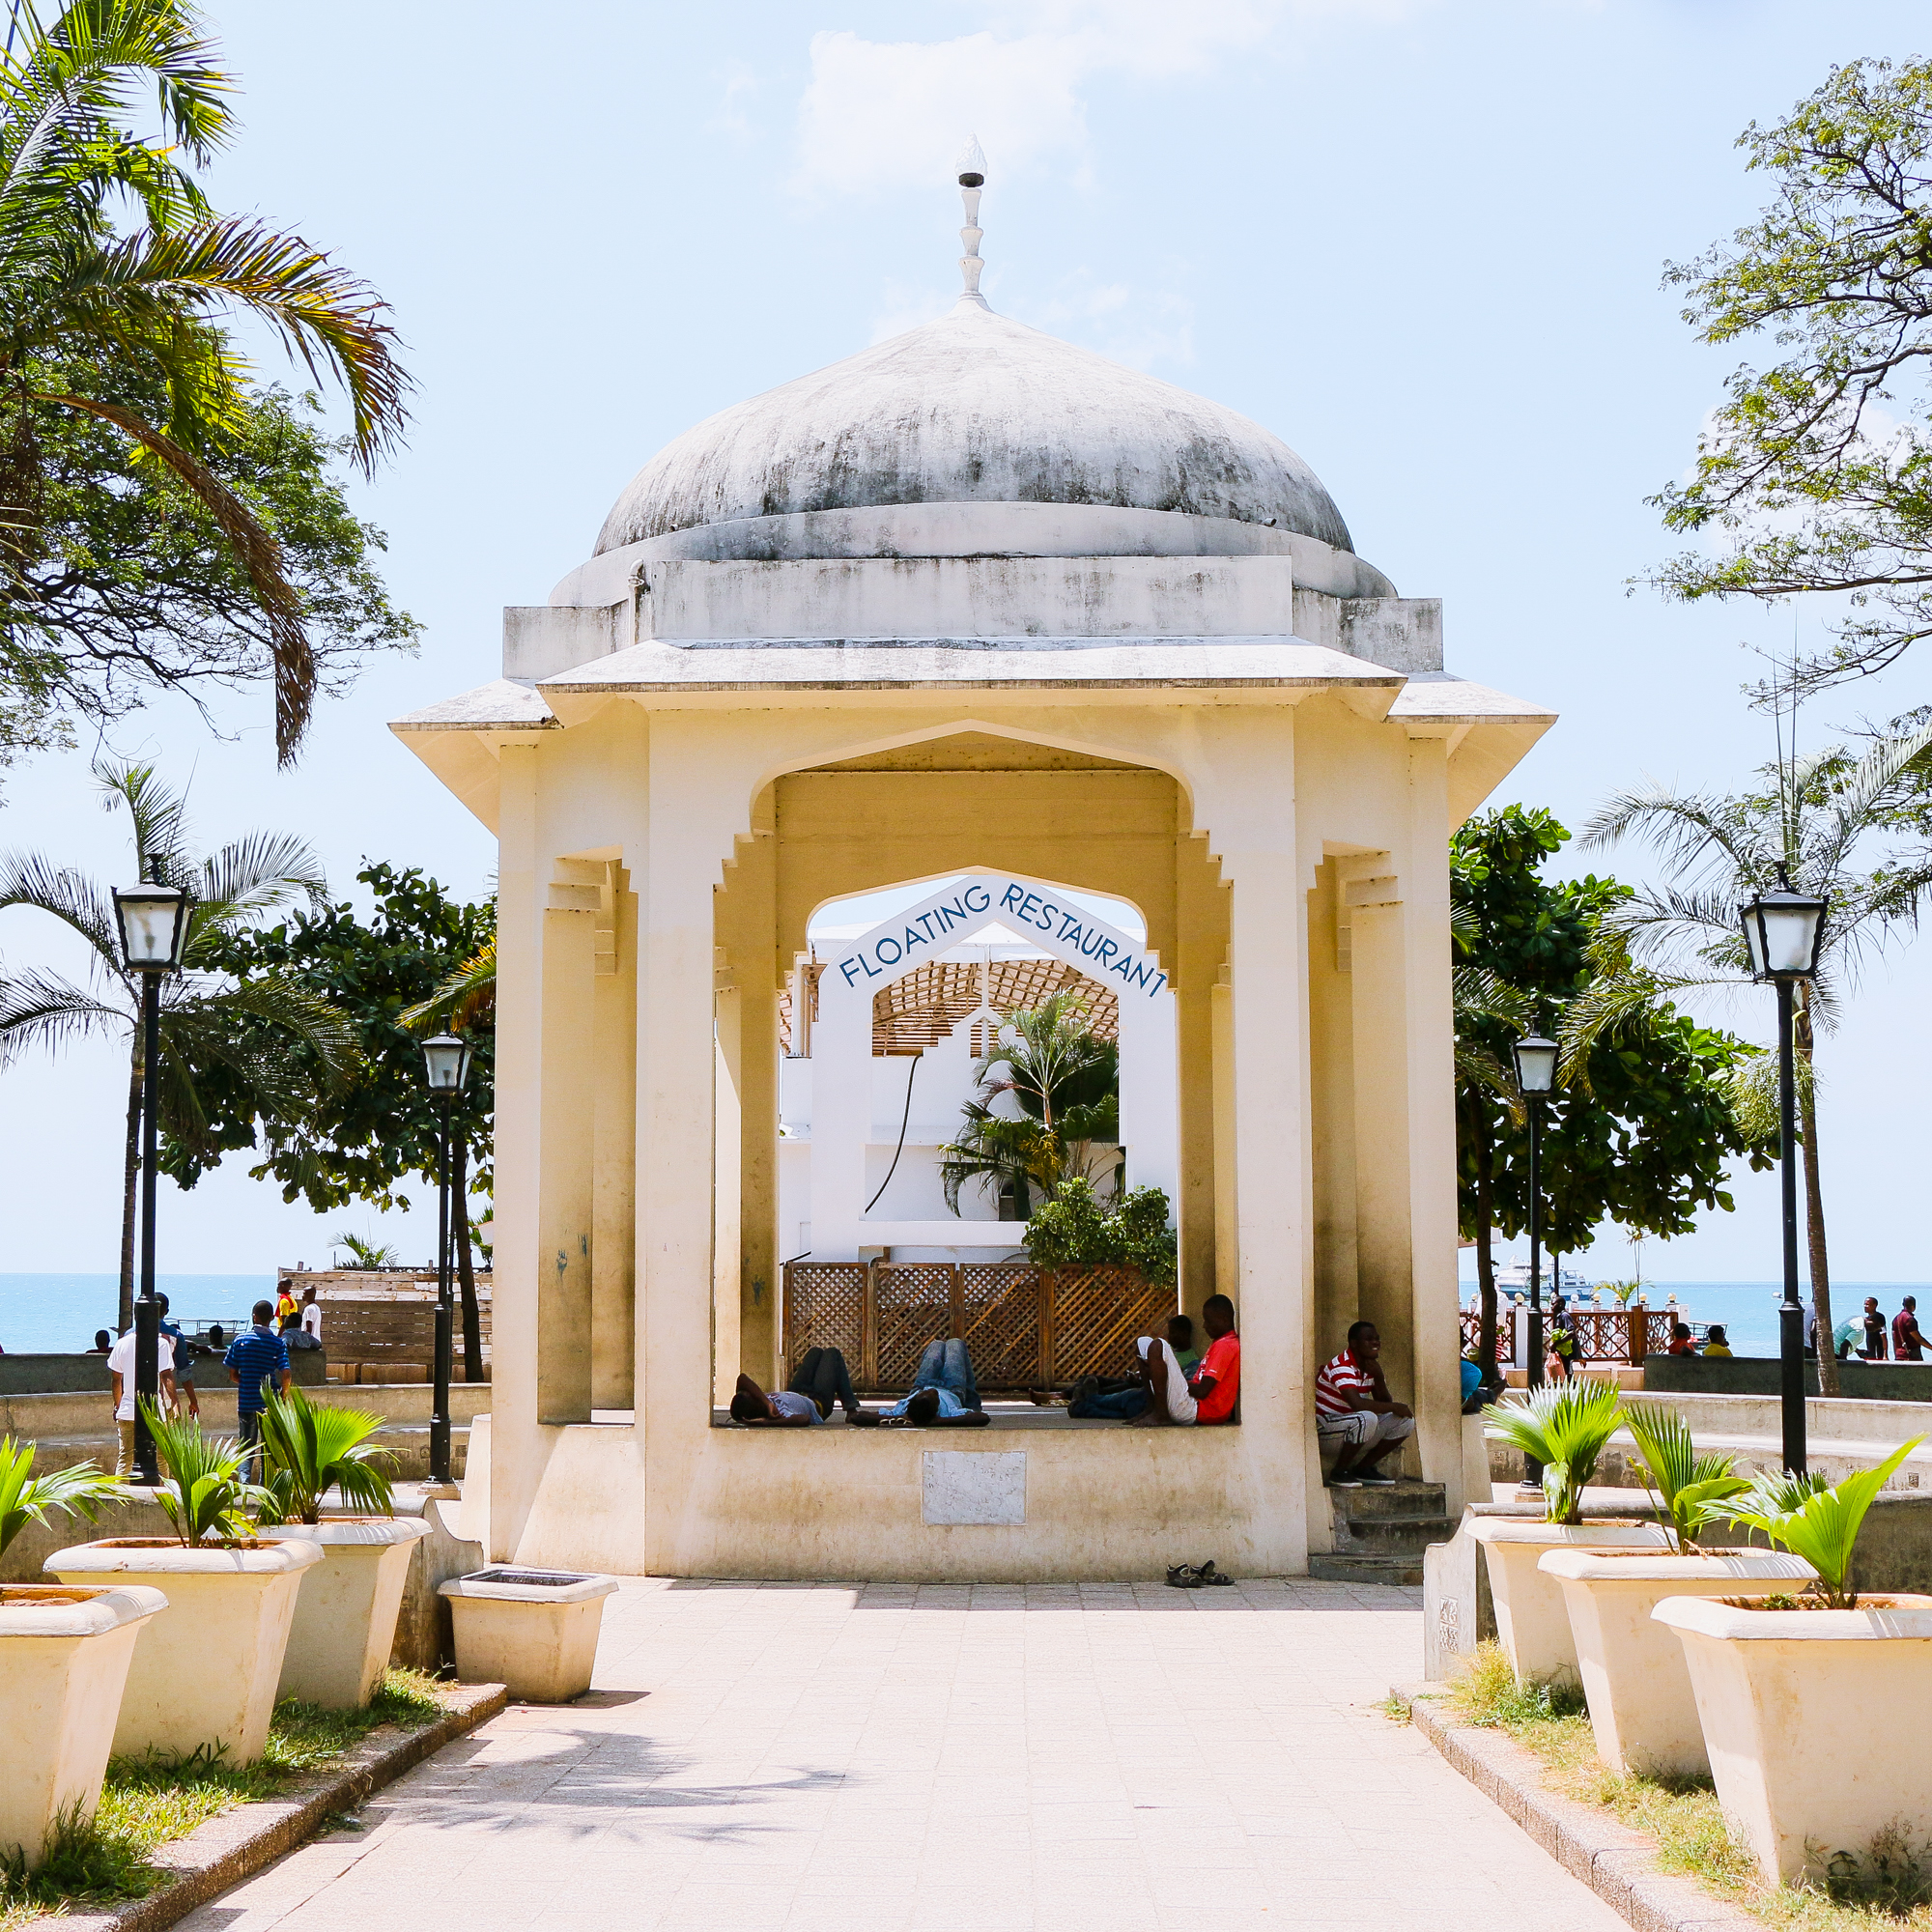 Monument built to commemorate a visit by Princess Margaret. Forodhani Gardens Stone Town Zanzibar